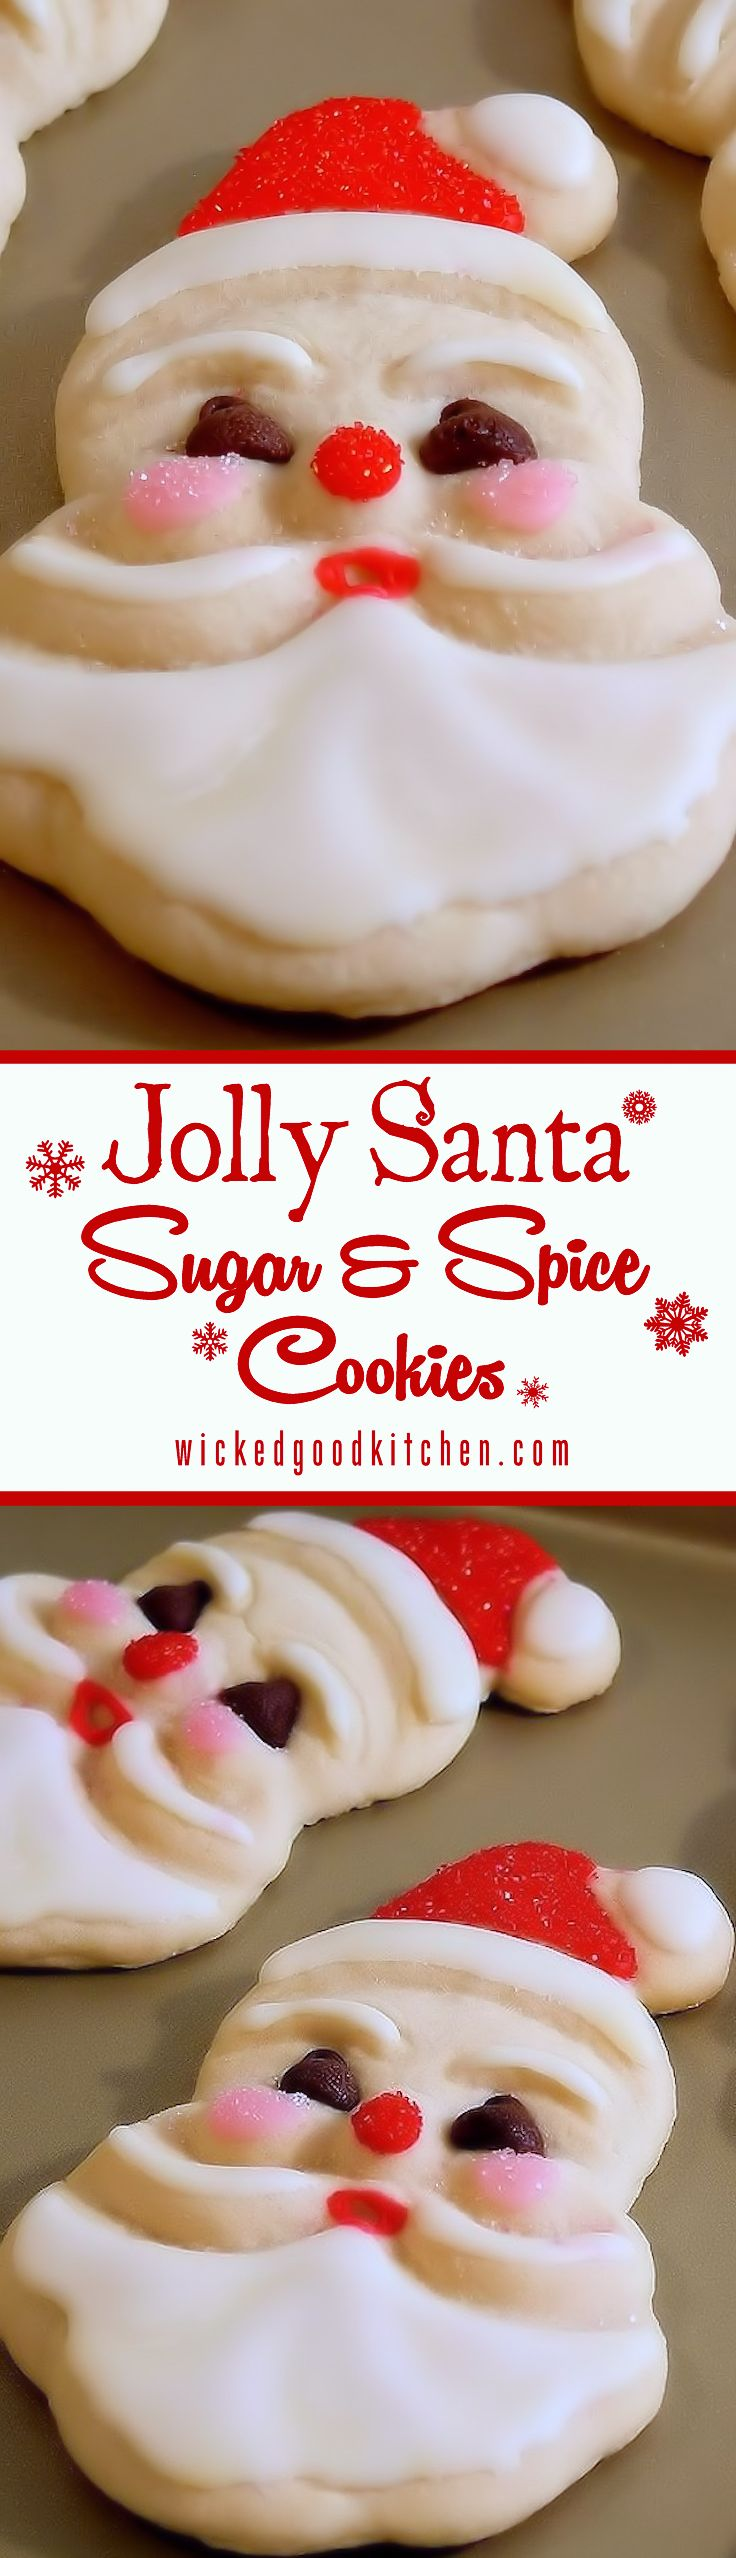 Old-Fashioned Jolly Santa Sugar & Spice Sugar Cookies ~ Just like Grandma used to bake! This Christmas bake these nostalgic lightly spiced sugar cookies. The recipe is ideal for young bakers as the dough handles easily. Includes easy recipe for Grandma's Sugar Cookie Icing. Kids and adults LOVE them!